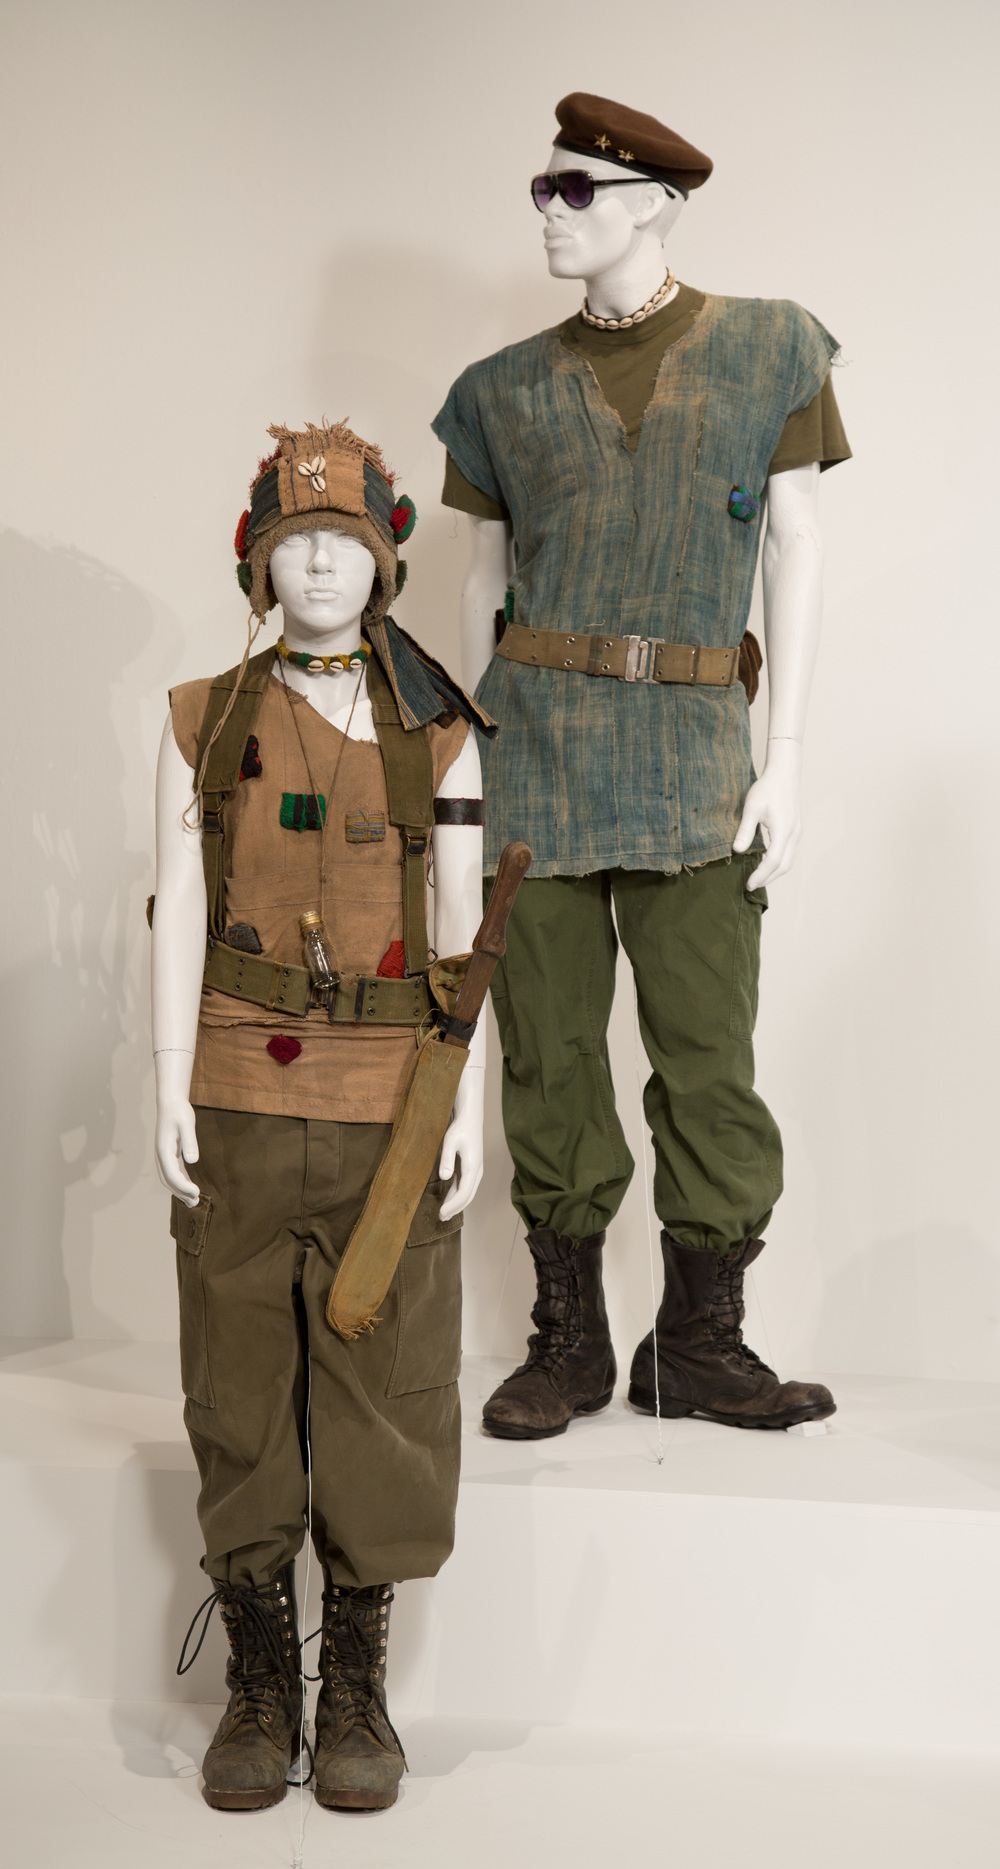 """Beasts Of No Nation"" costumes by Costume Designer, Jenny Eagan. These costumes can be seen in the 24th Annual ""Art of Motion Picture Costume Design"" exhibition, FIDM Museum, Fashion Institute of Design & Merchandising, Los Angeles. The exhibition is free to the public, Tuesday, February 9 through Saturday, April 30, 2016, 10:00 a.m. - 5:00 p.m. .(Photo: Alex J. Berliner/ABImages)"